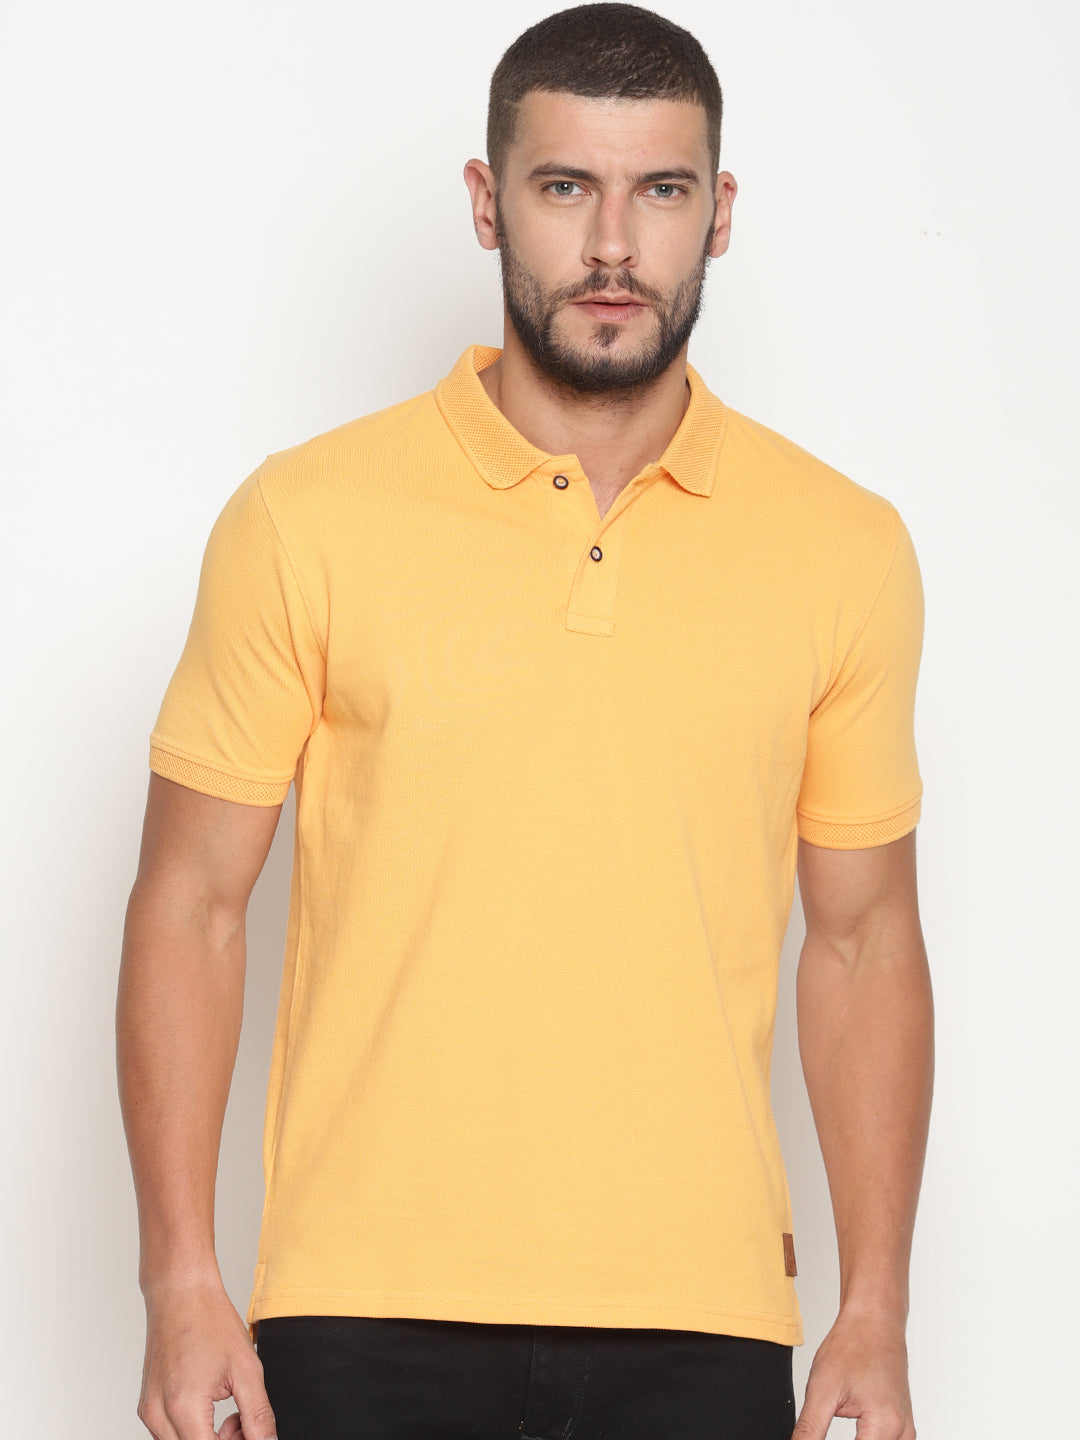 Men's  Warm Apricot Pastel Edition Polo T-Shirt